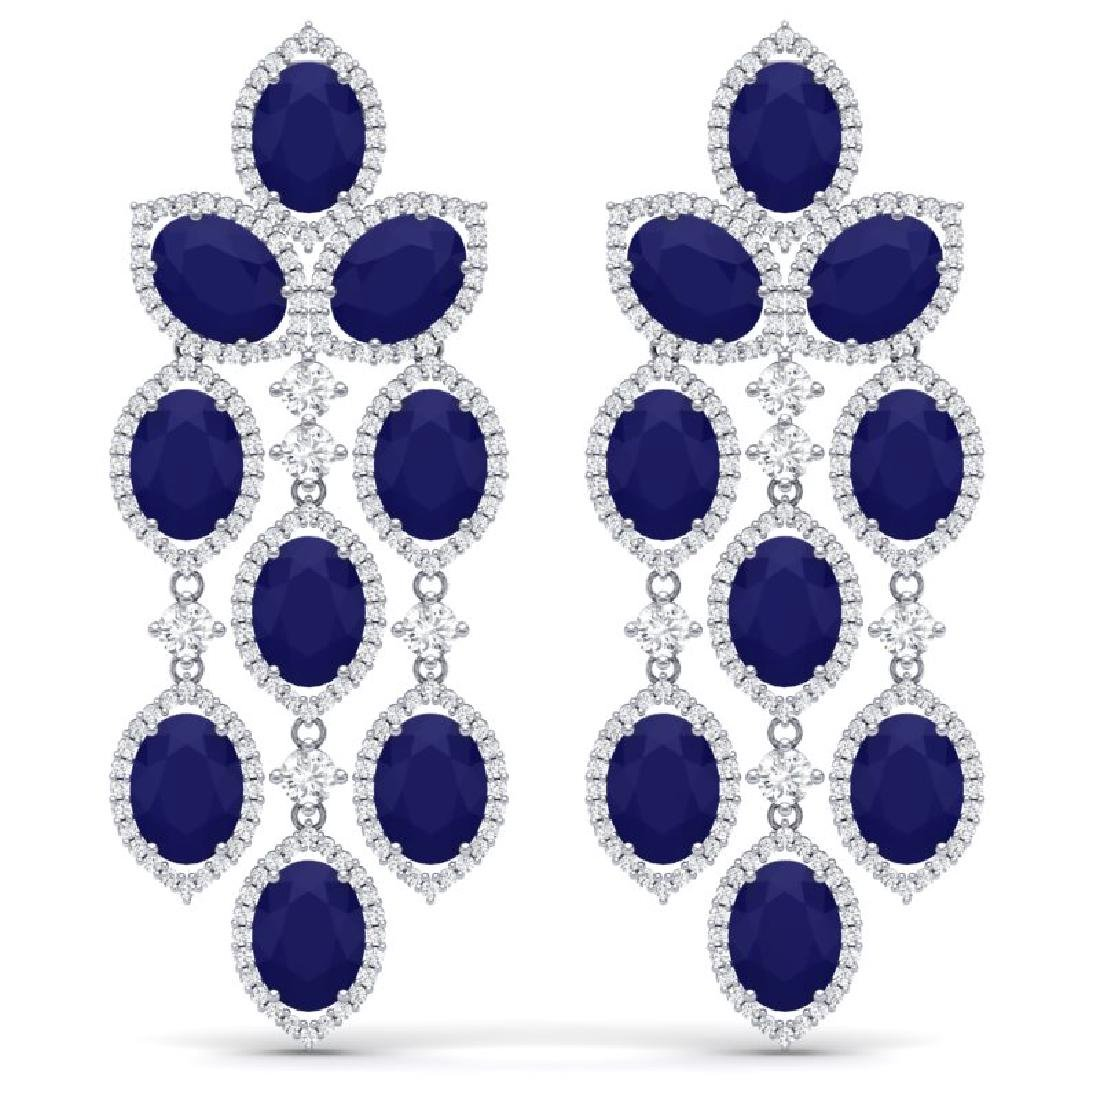 26.15 CTW Royalty Sapphire & VS Diamond Earrings 18K